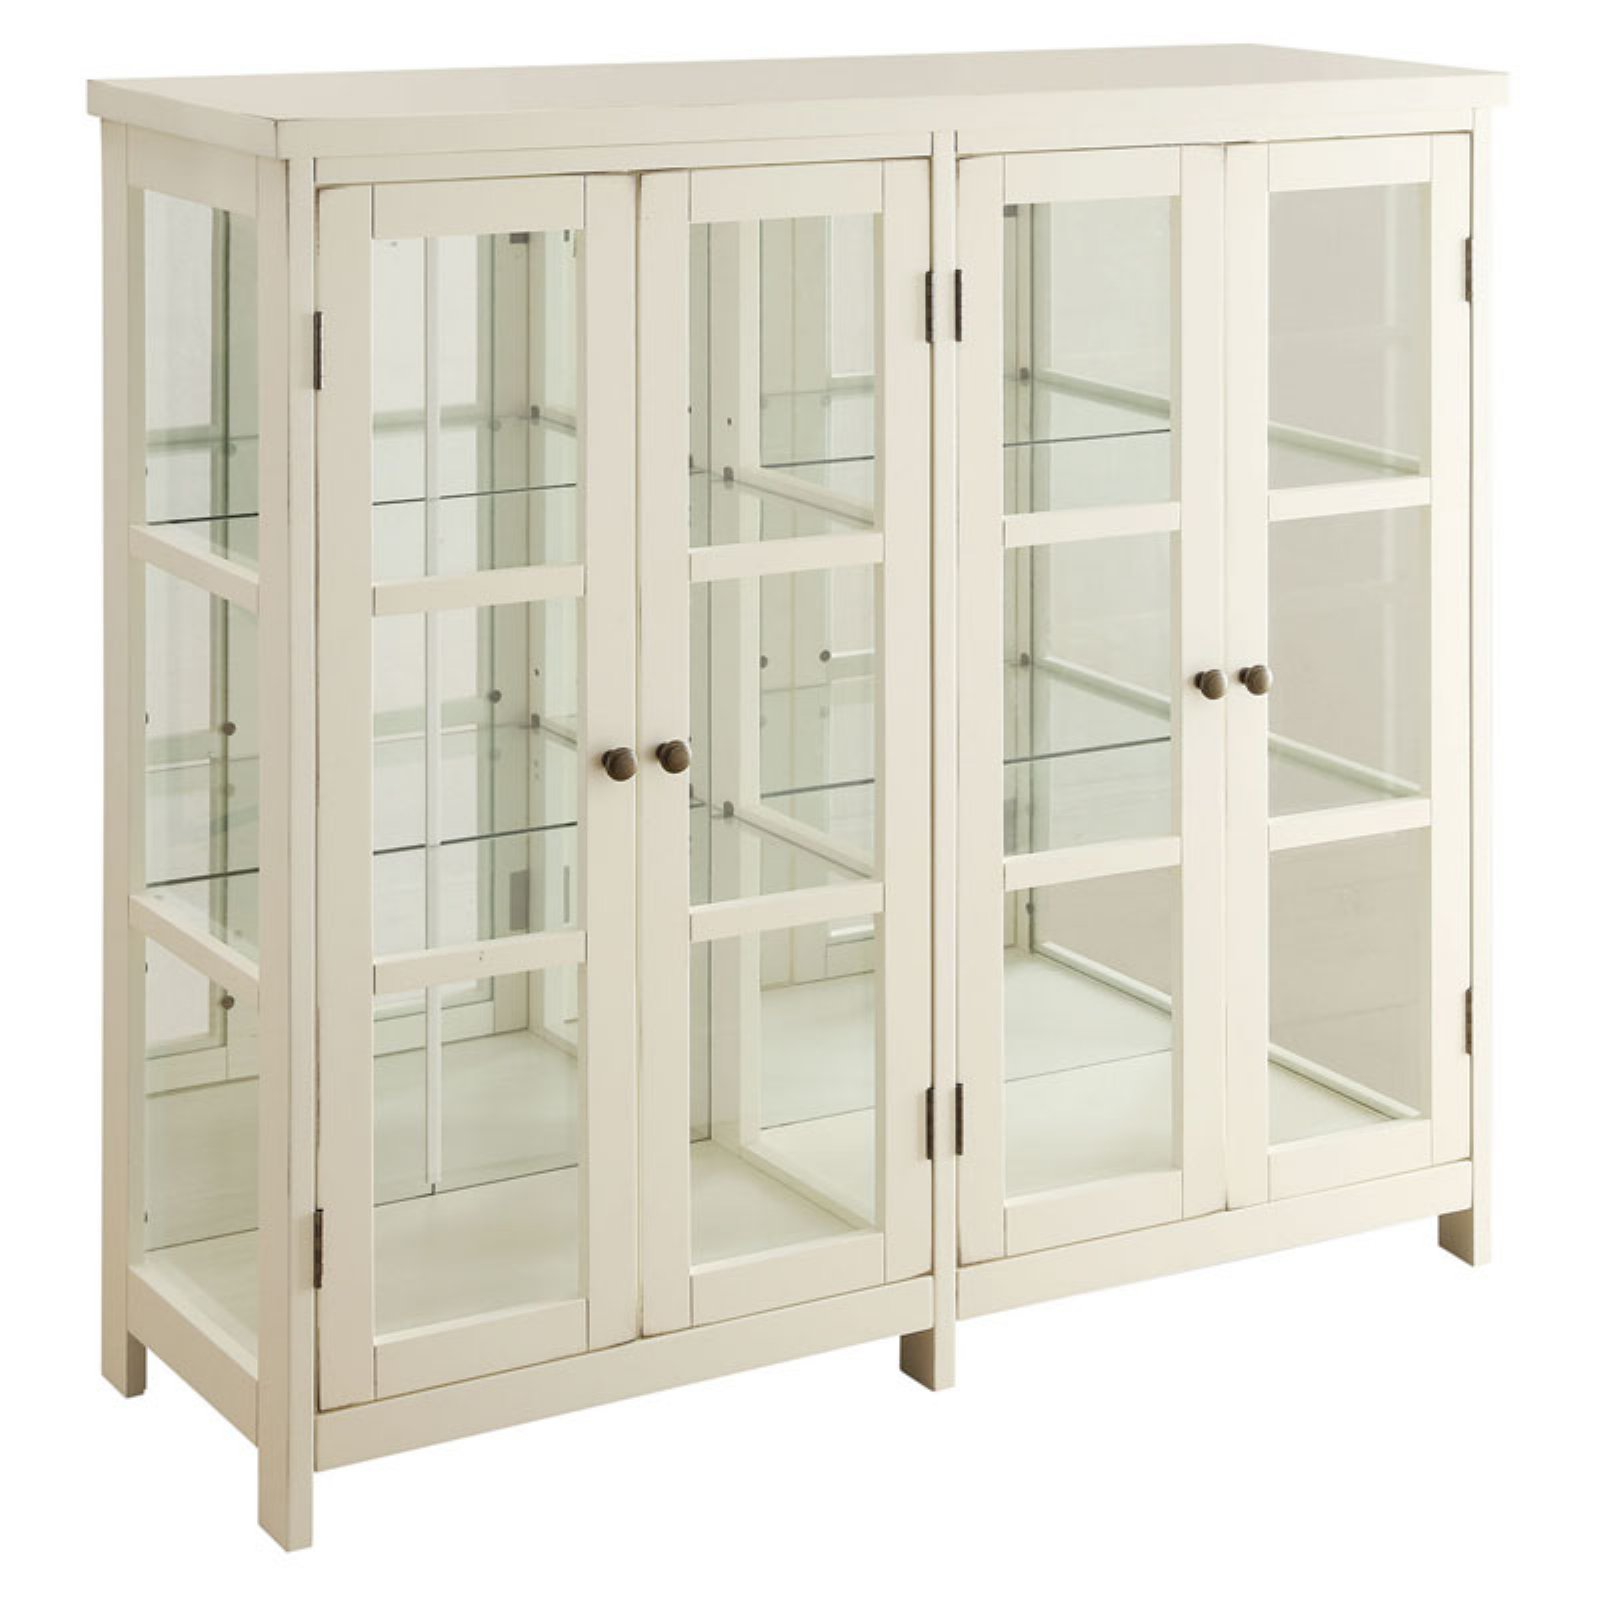 Coaster Company Transitional Style White Accent Cabinet w/ Glass Panel Doors